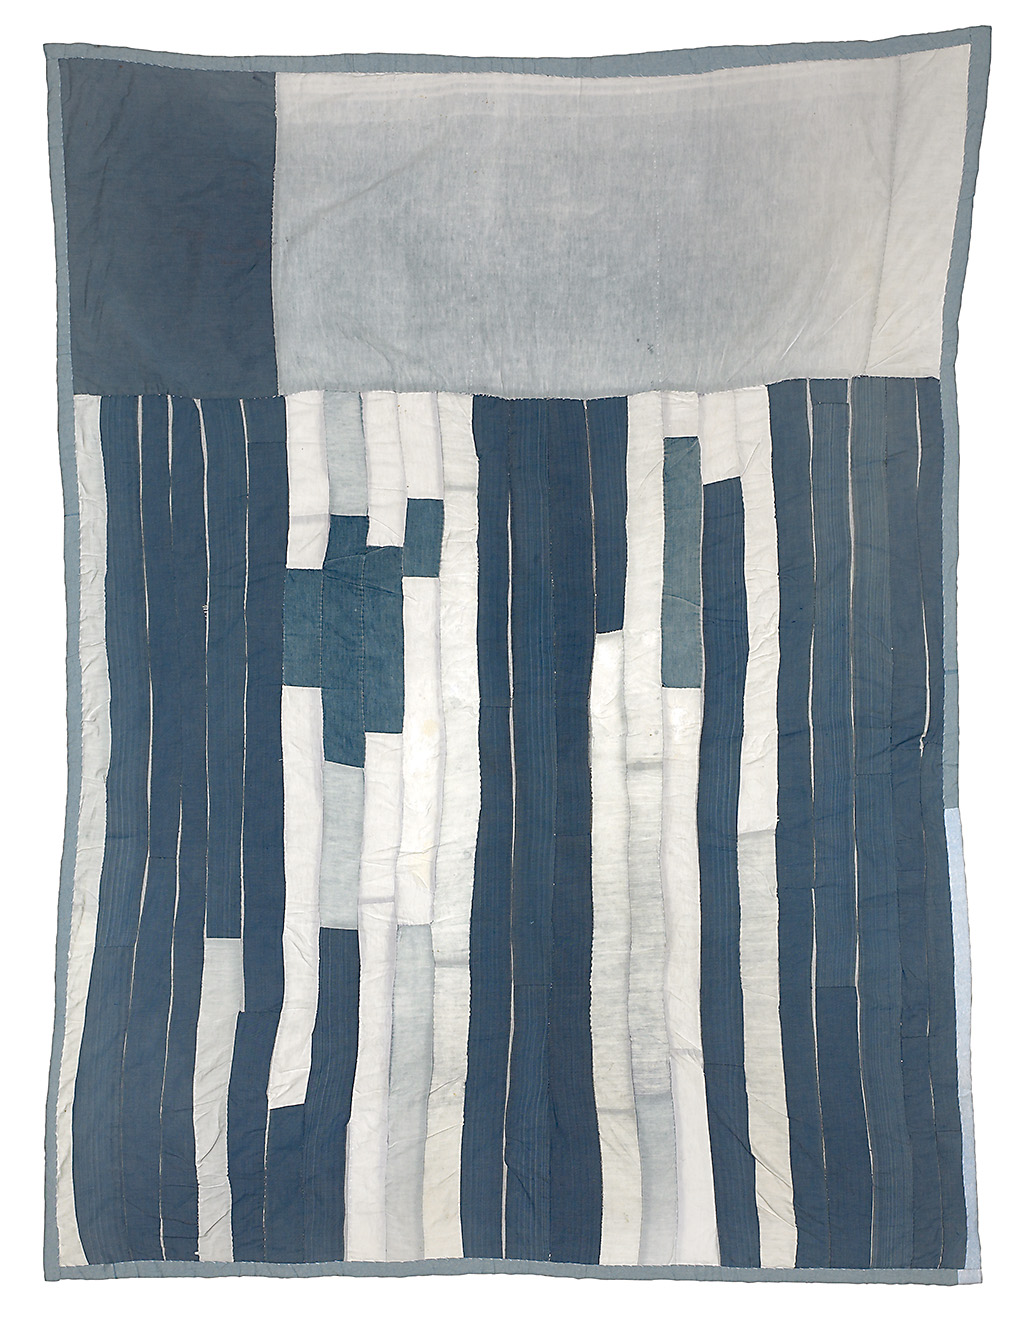 Blocks-and-Strips-Work-Clothes-Quilt1950s-Denim-and-cotton-twill-87-x-66-inches-Emma-Lee-Pettway-Campbell